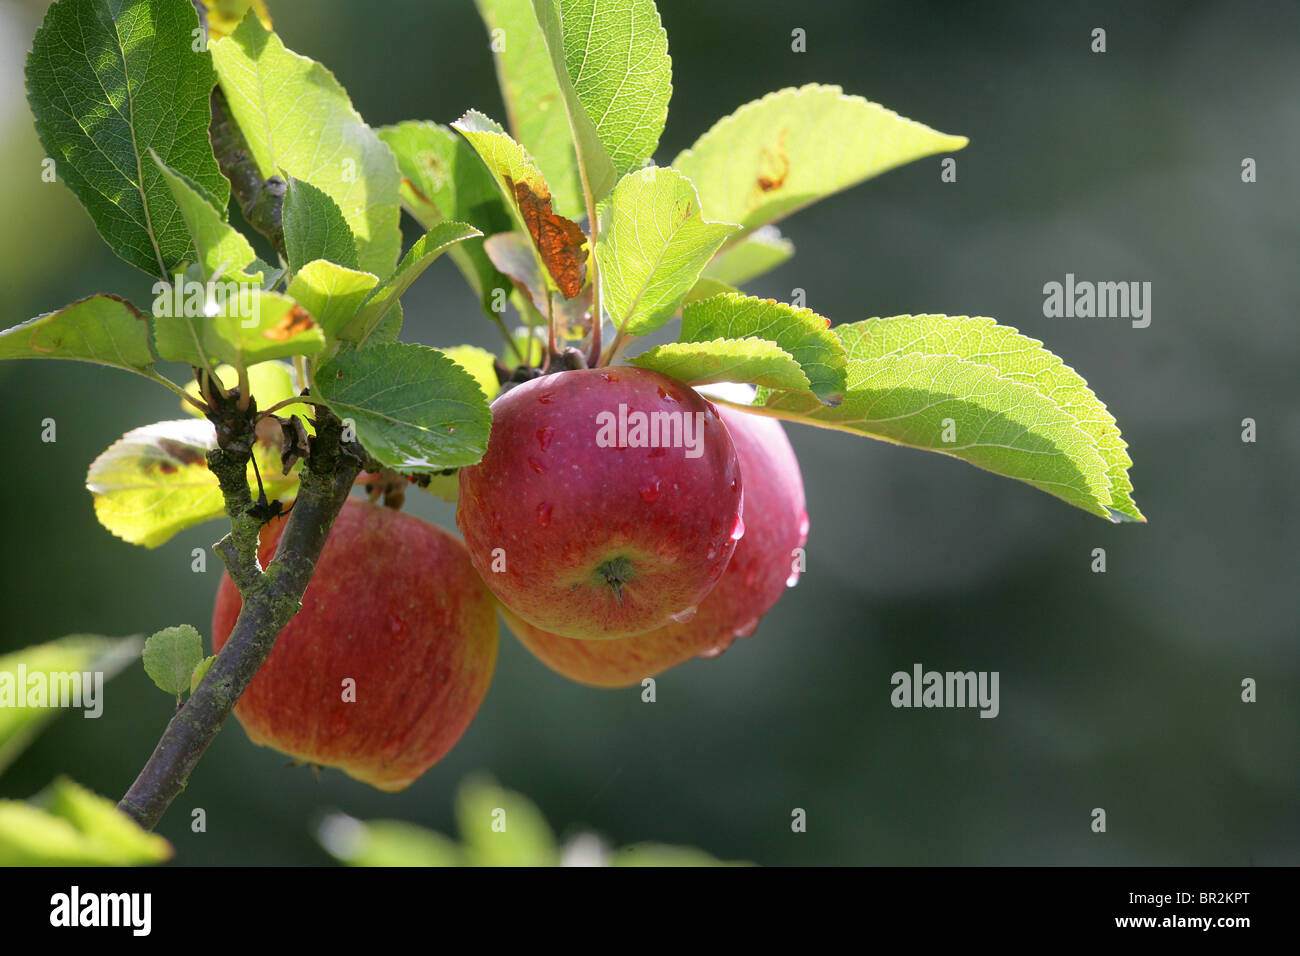 Ripe red apples with rain drops - Stock Image